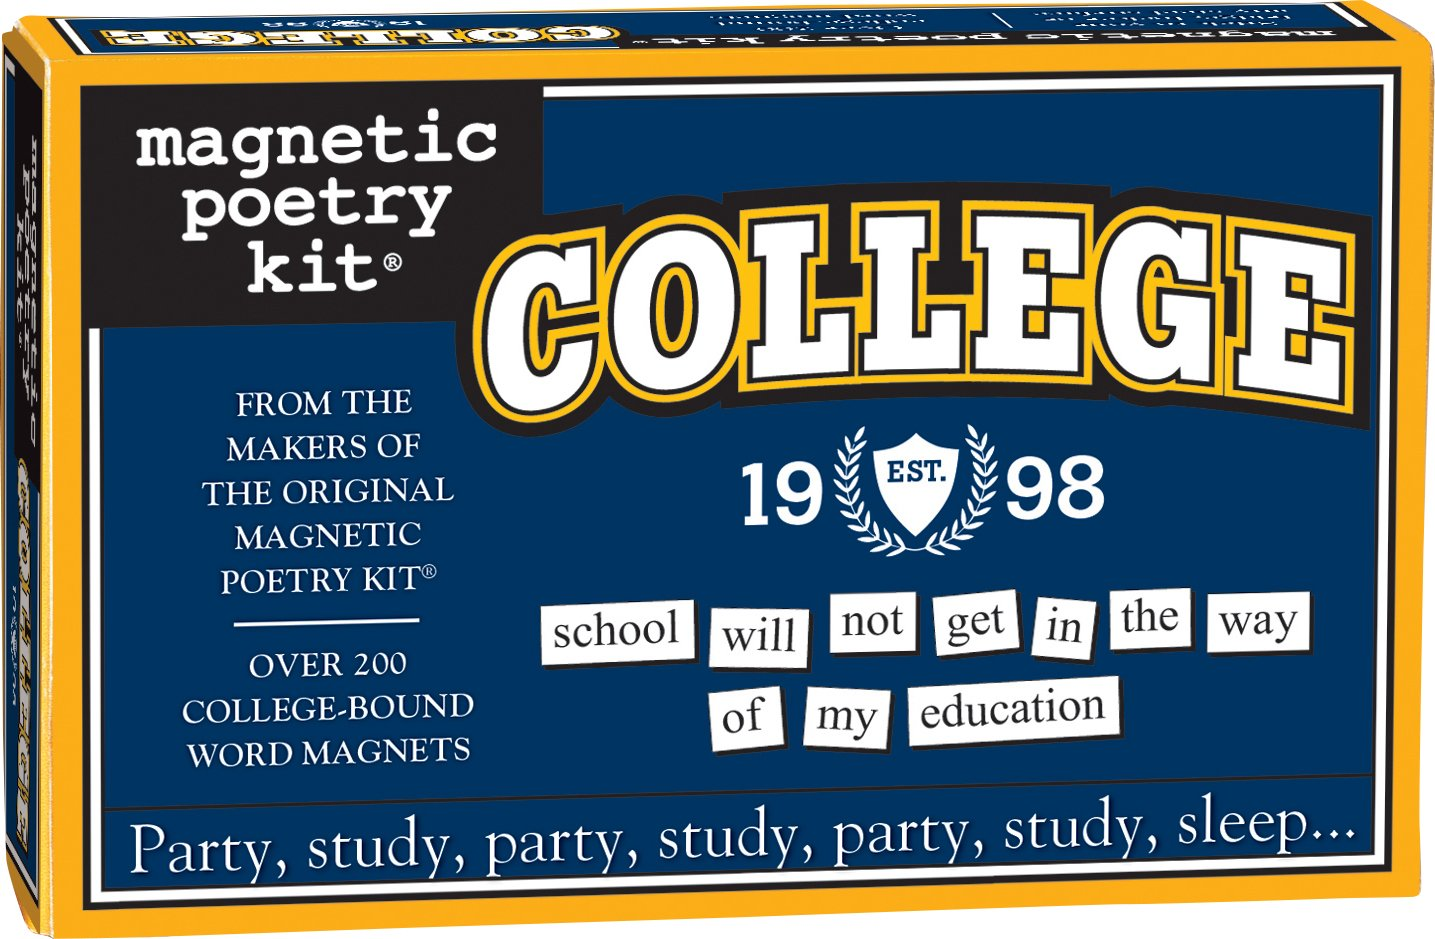 Magnetic Poetry - College Kit - Words for Refrigerator - Write Poems and Letters on The Fridge - Made in The USA